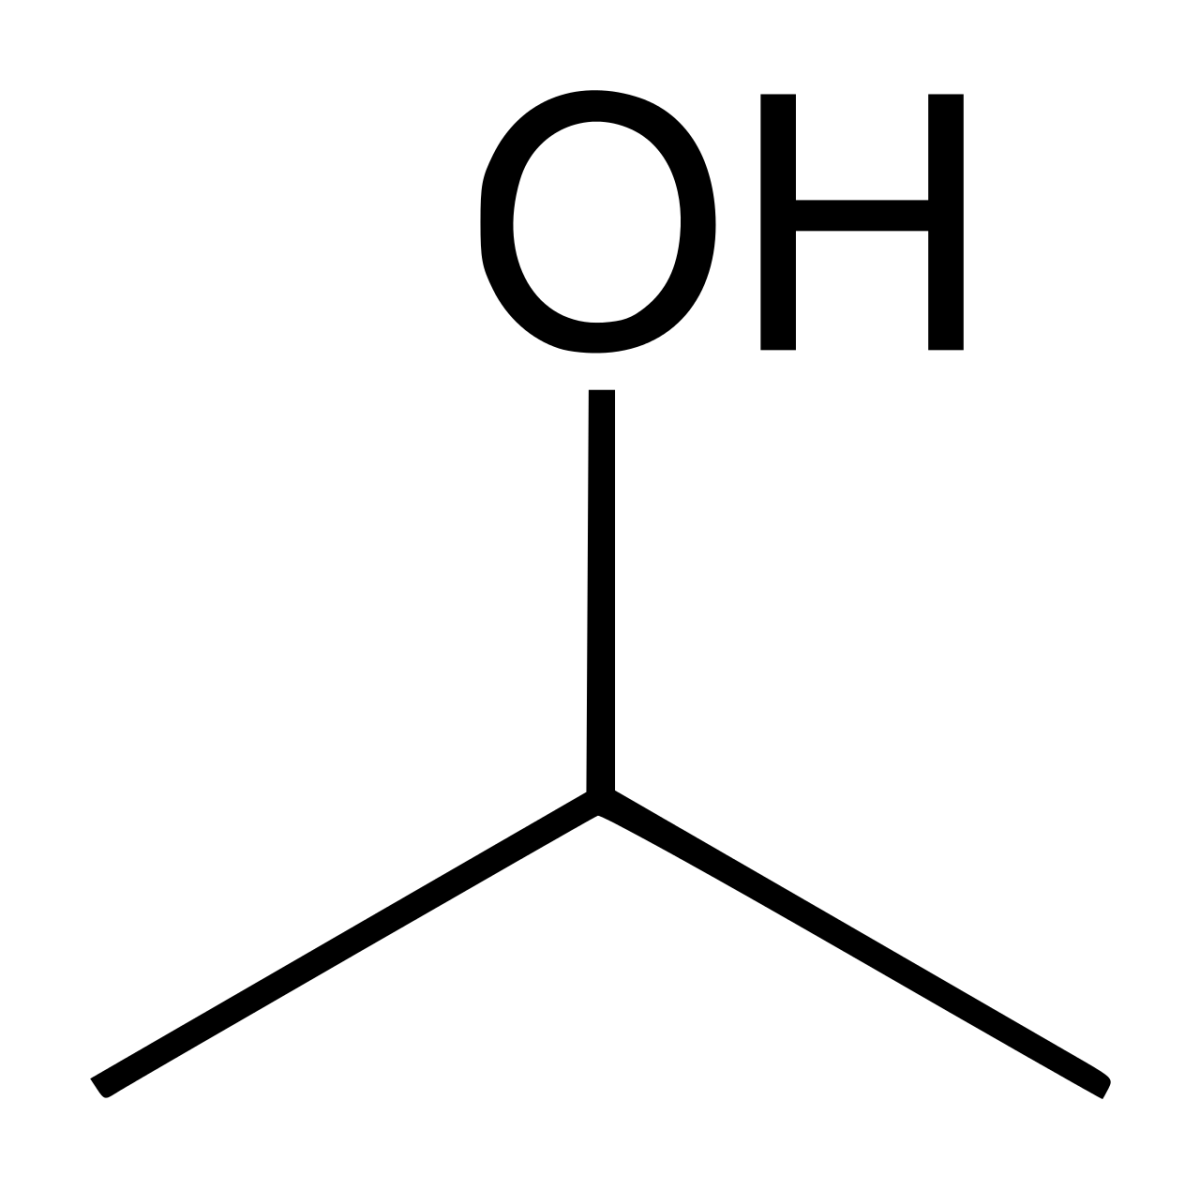 Isopropyl Alcohol Chemical Structure